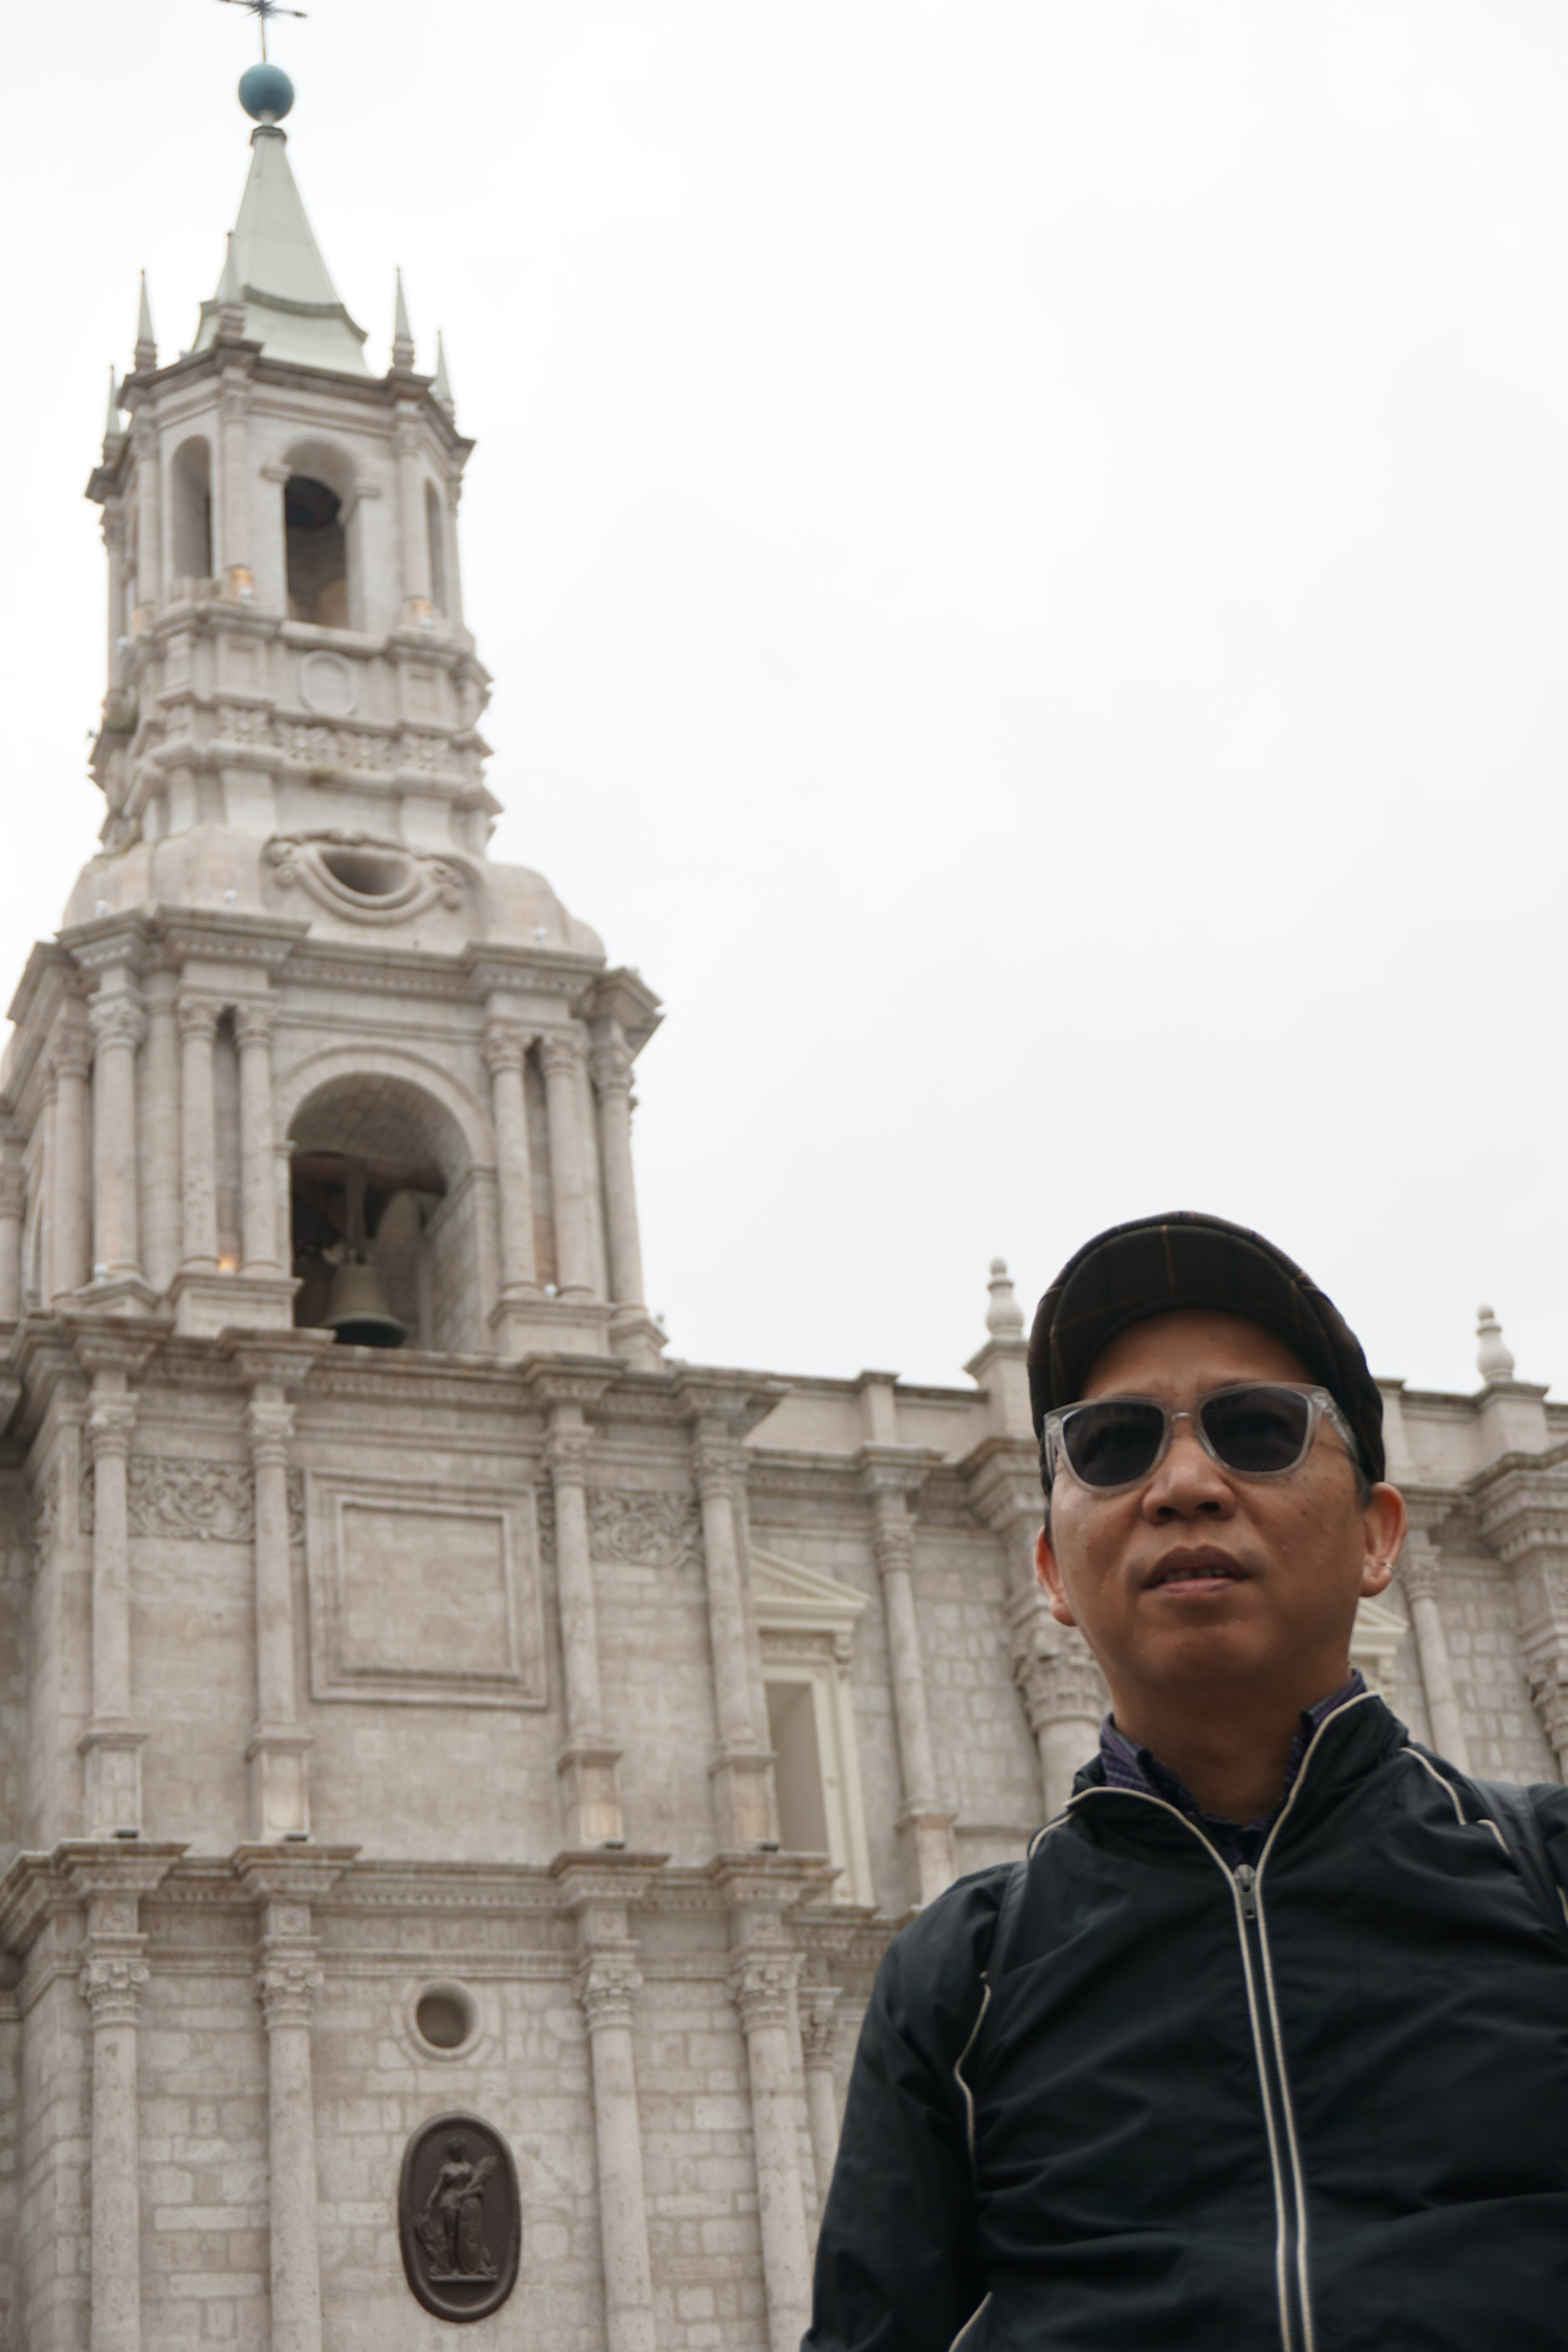 Arequipa's cathedral